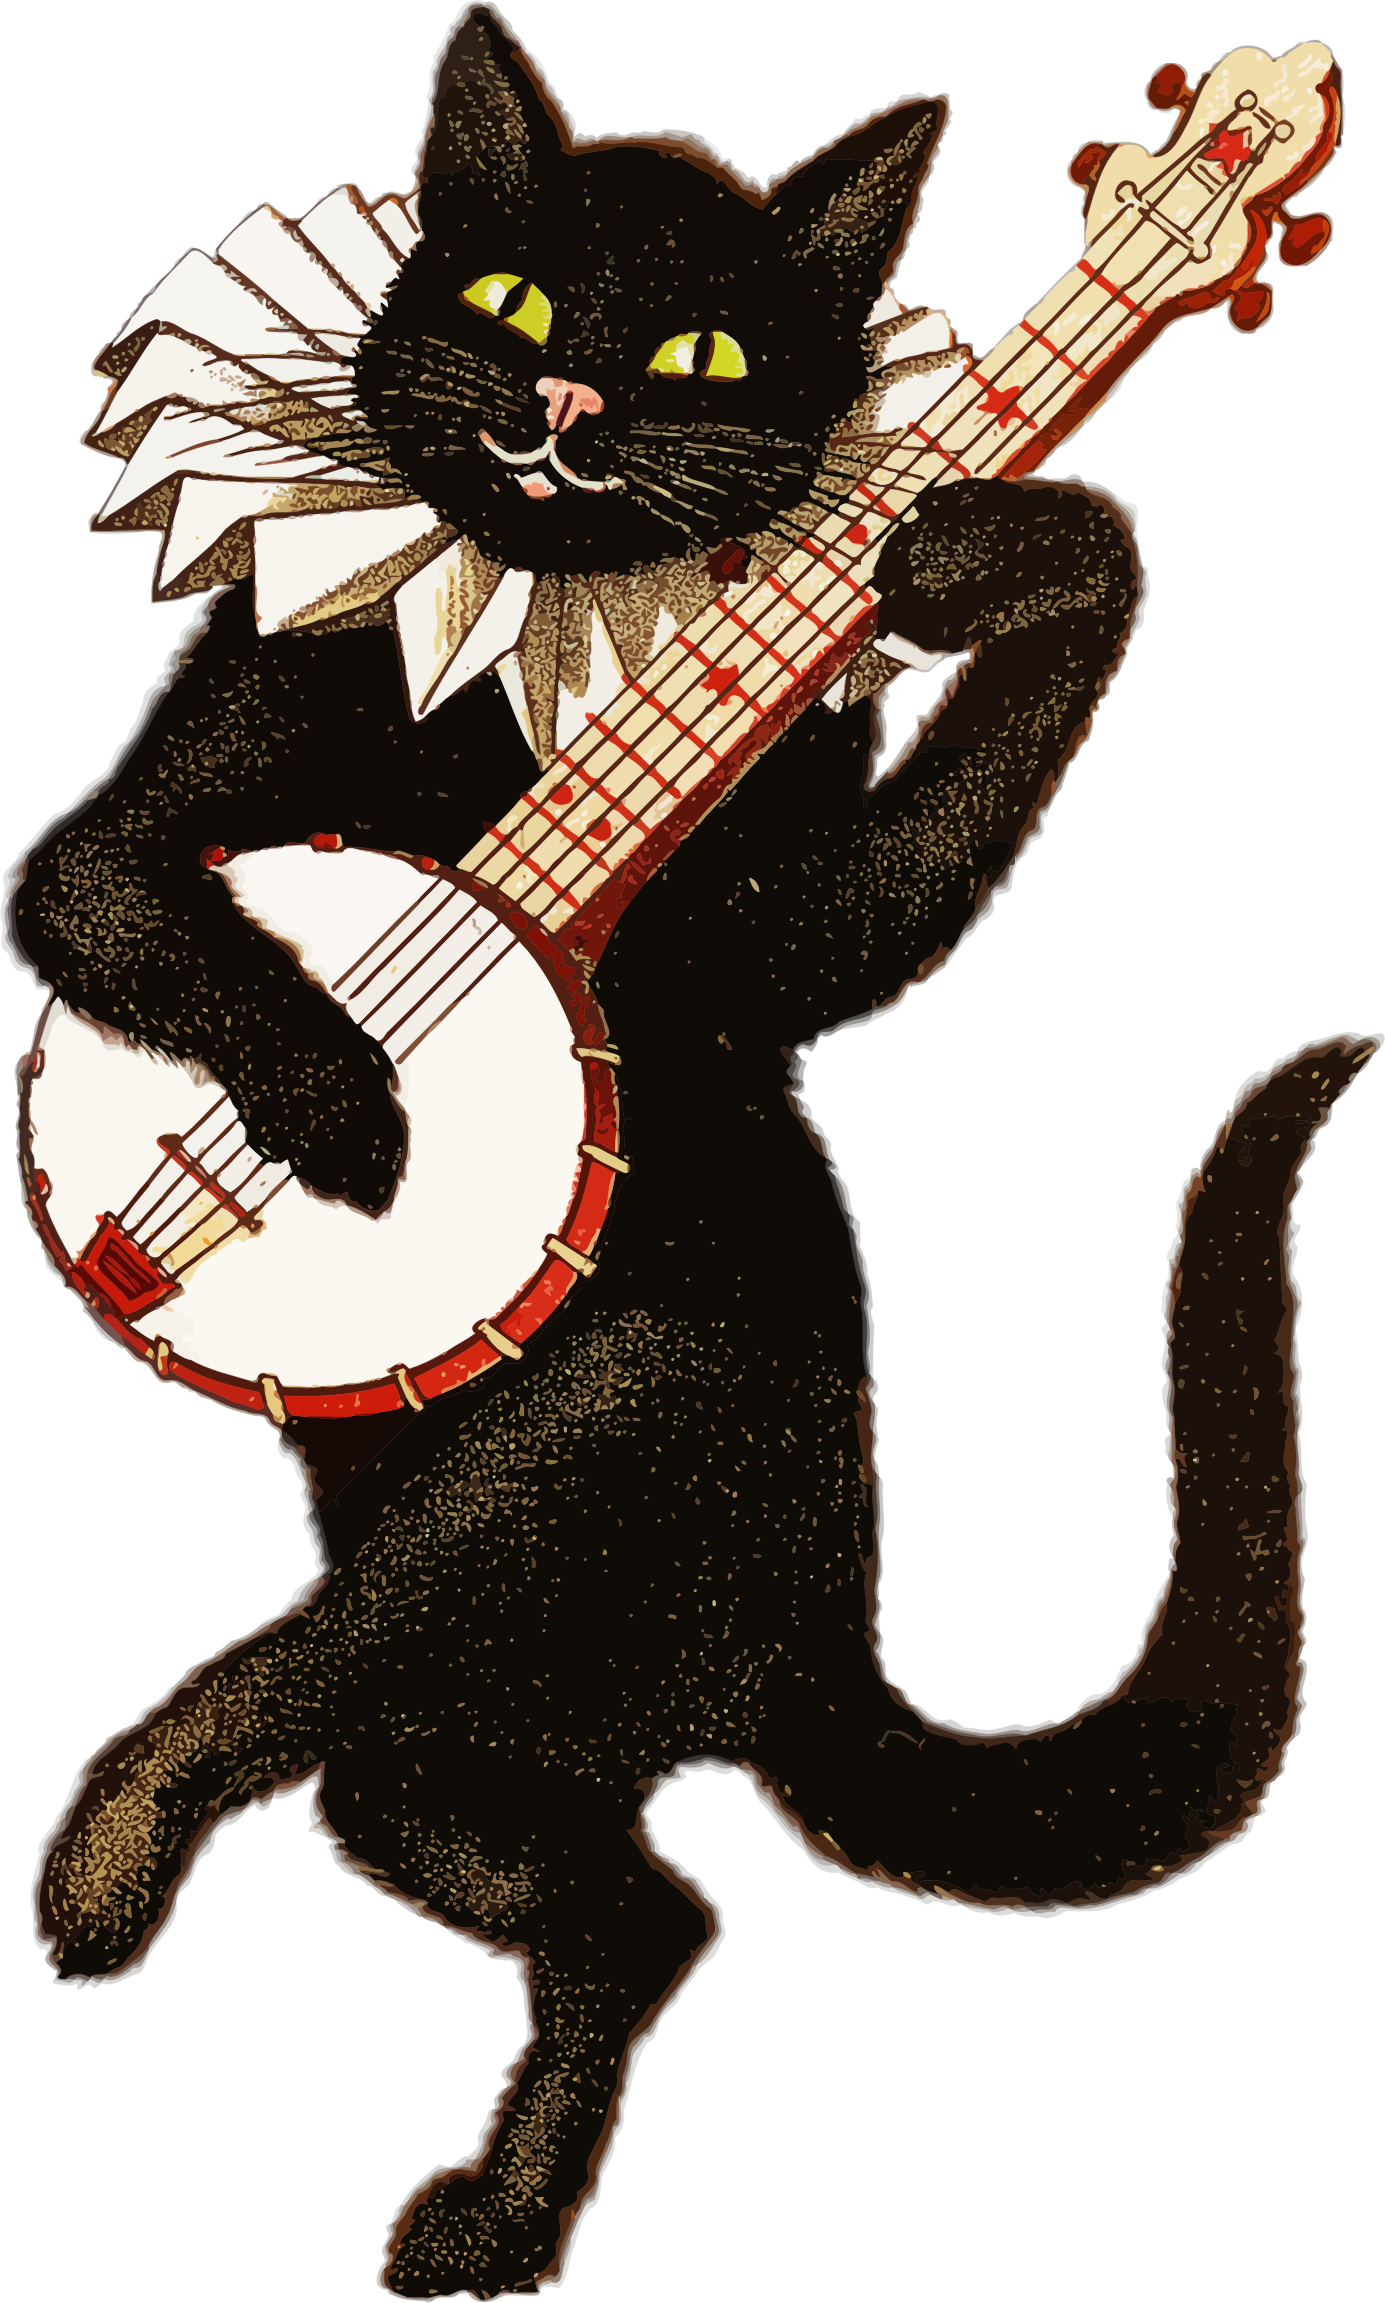 Clipart cat playing banjo. Clip from vintage graphic free download